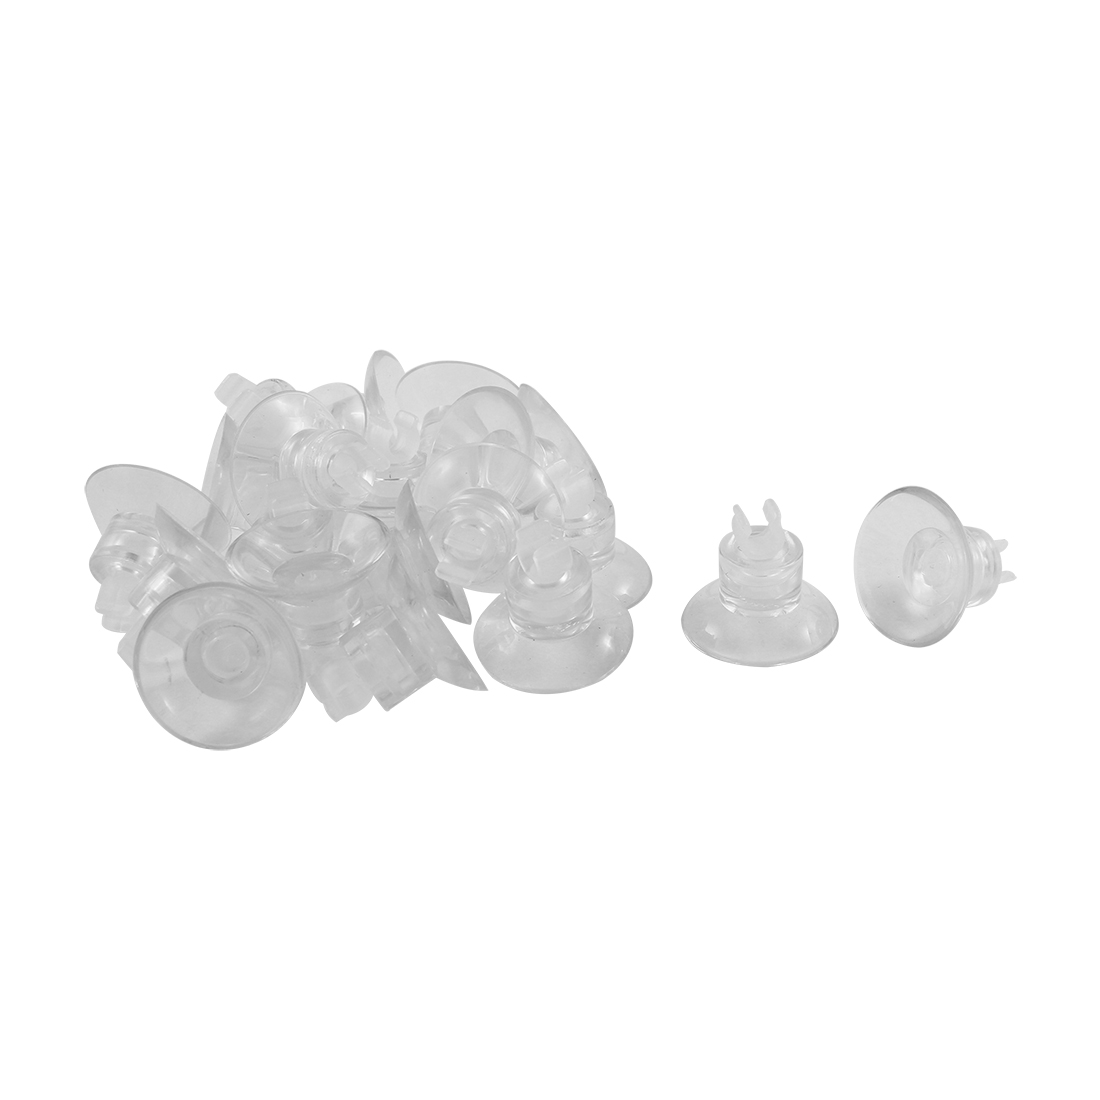 Aquarium Plastic Airline Tube Holders Clips Clamps Suction Cup Clear 20 Pcs